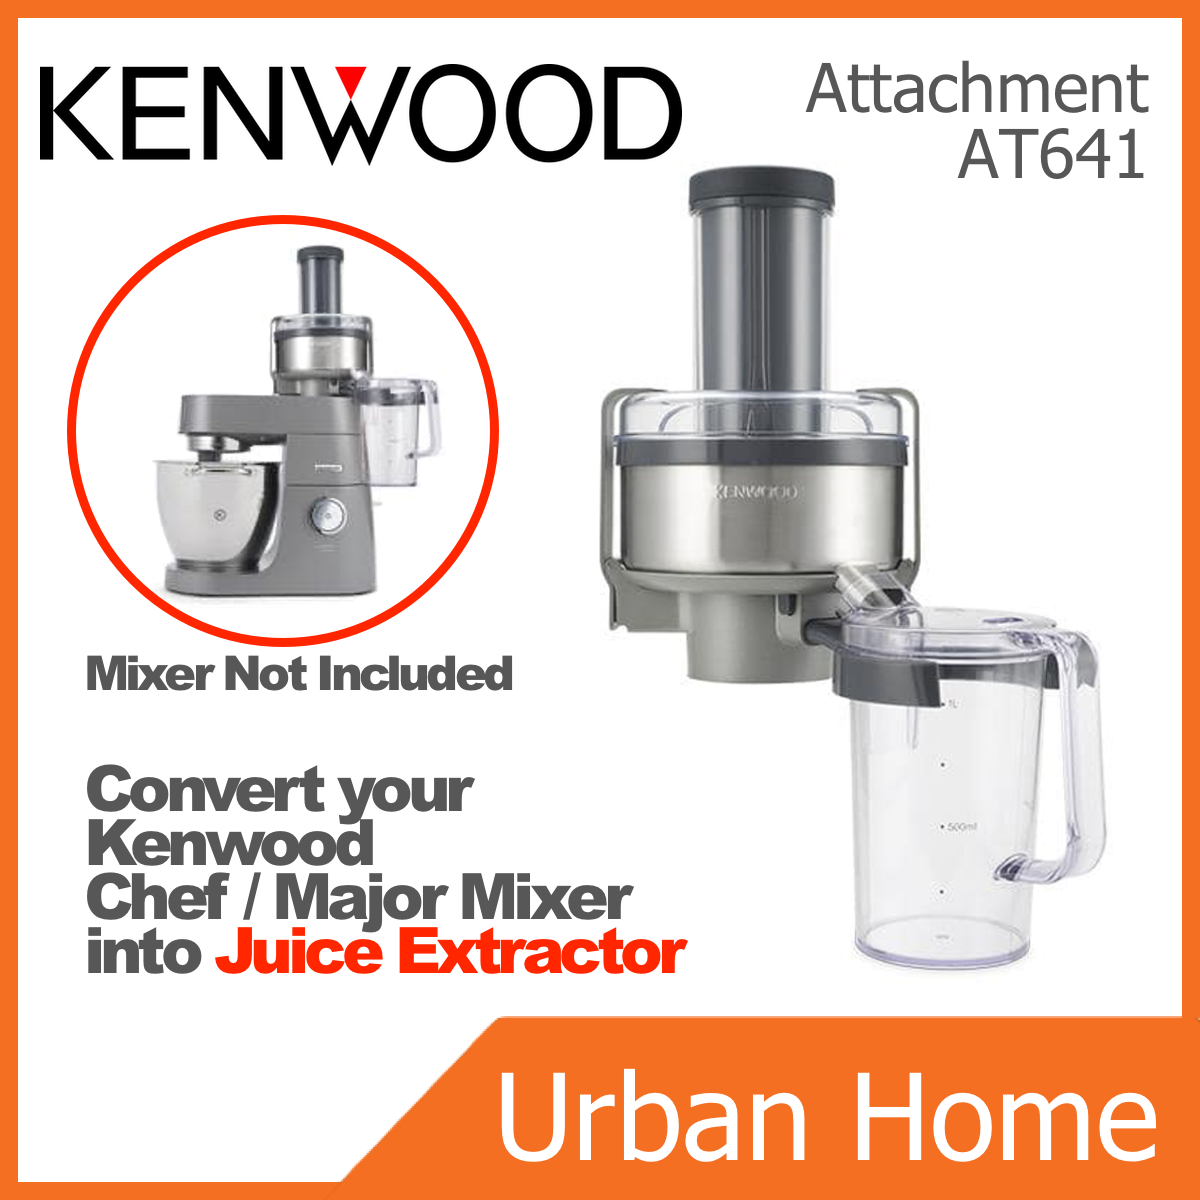 KENWOOD Juice Attractor Attachment forChef/Major Professional Series Mixer (AT641)